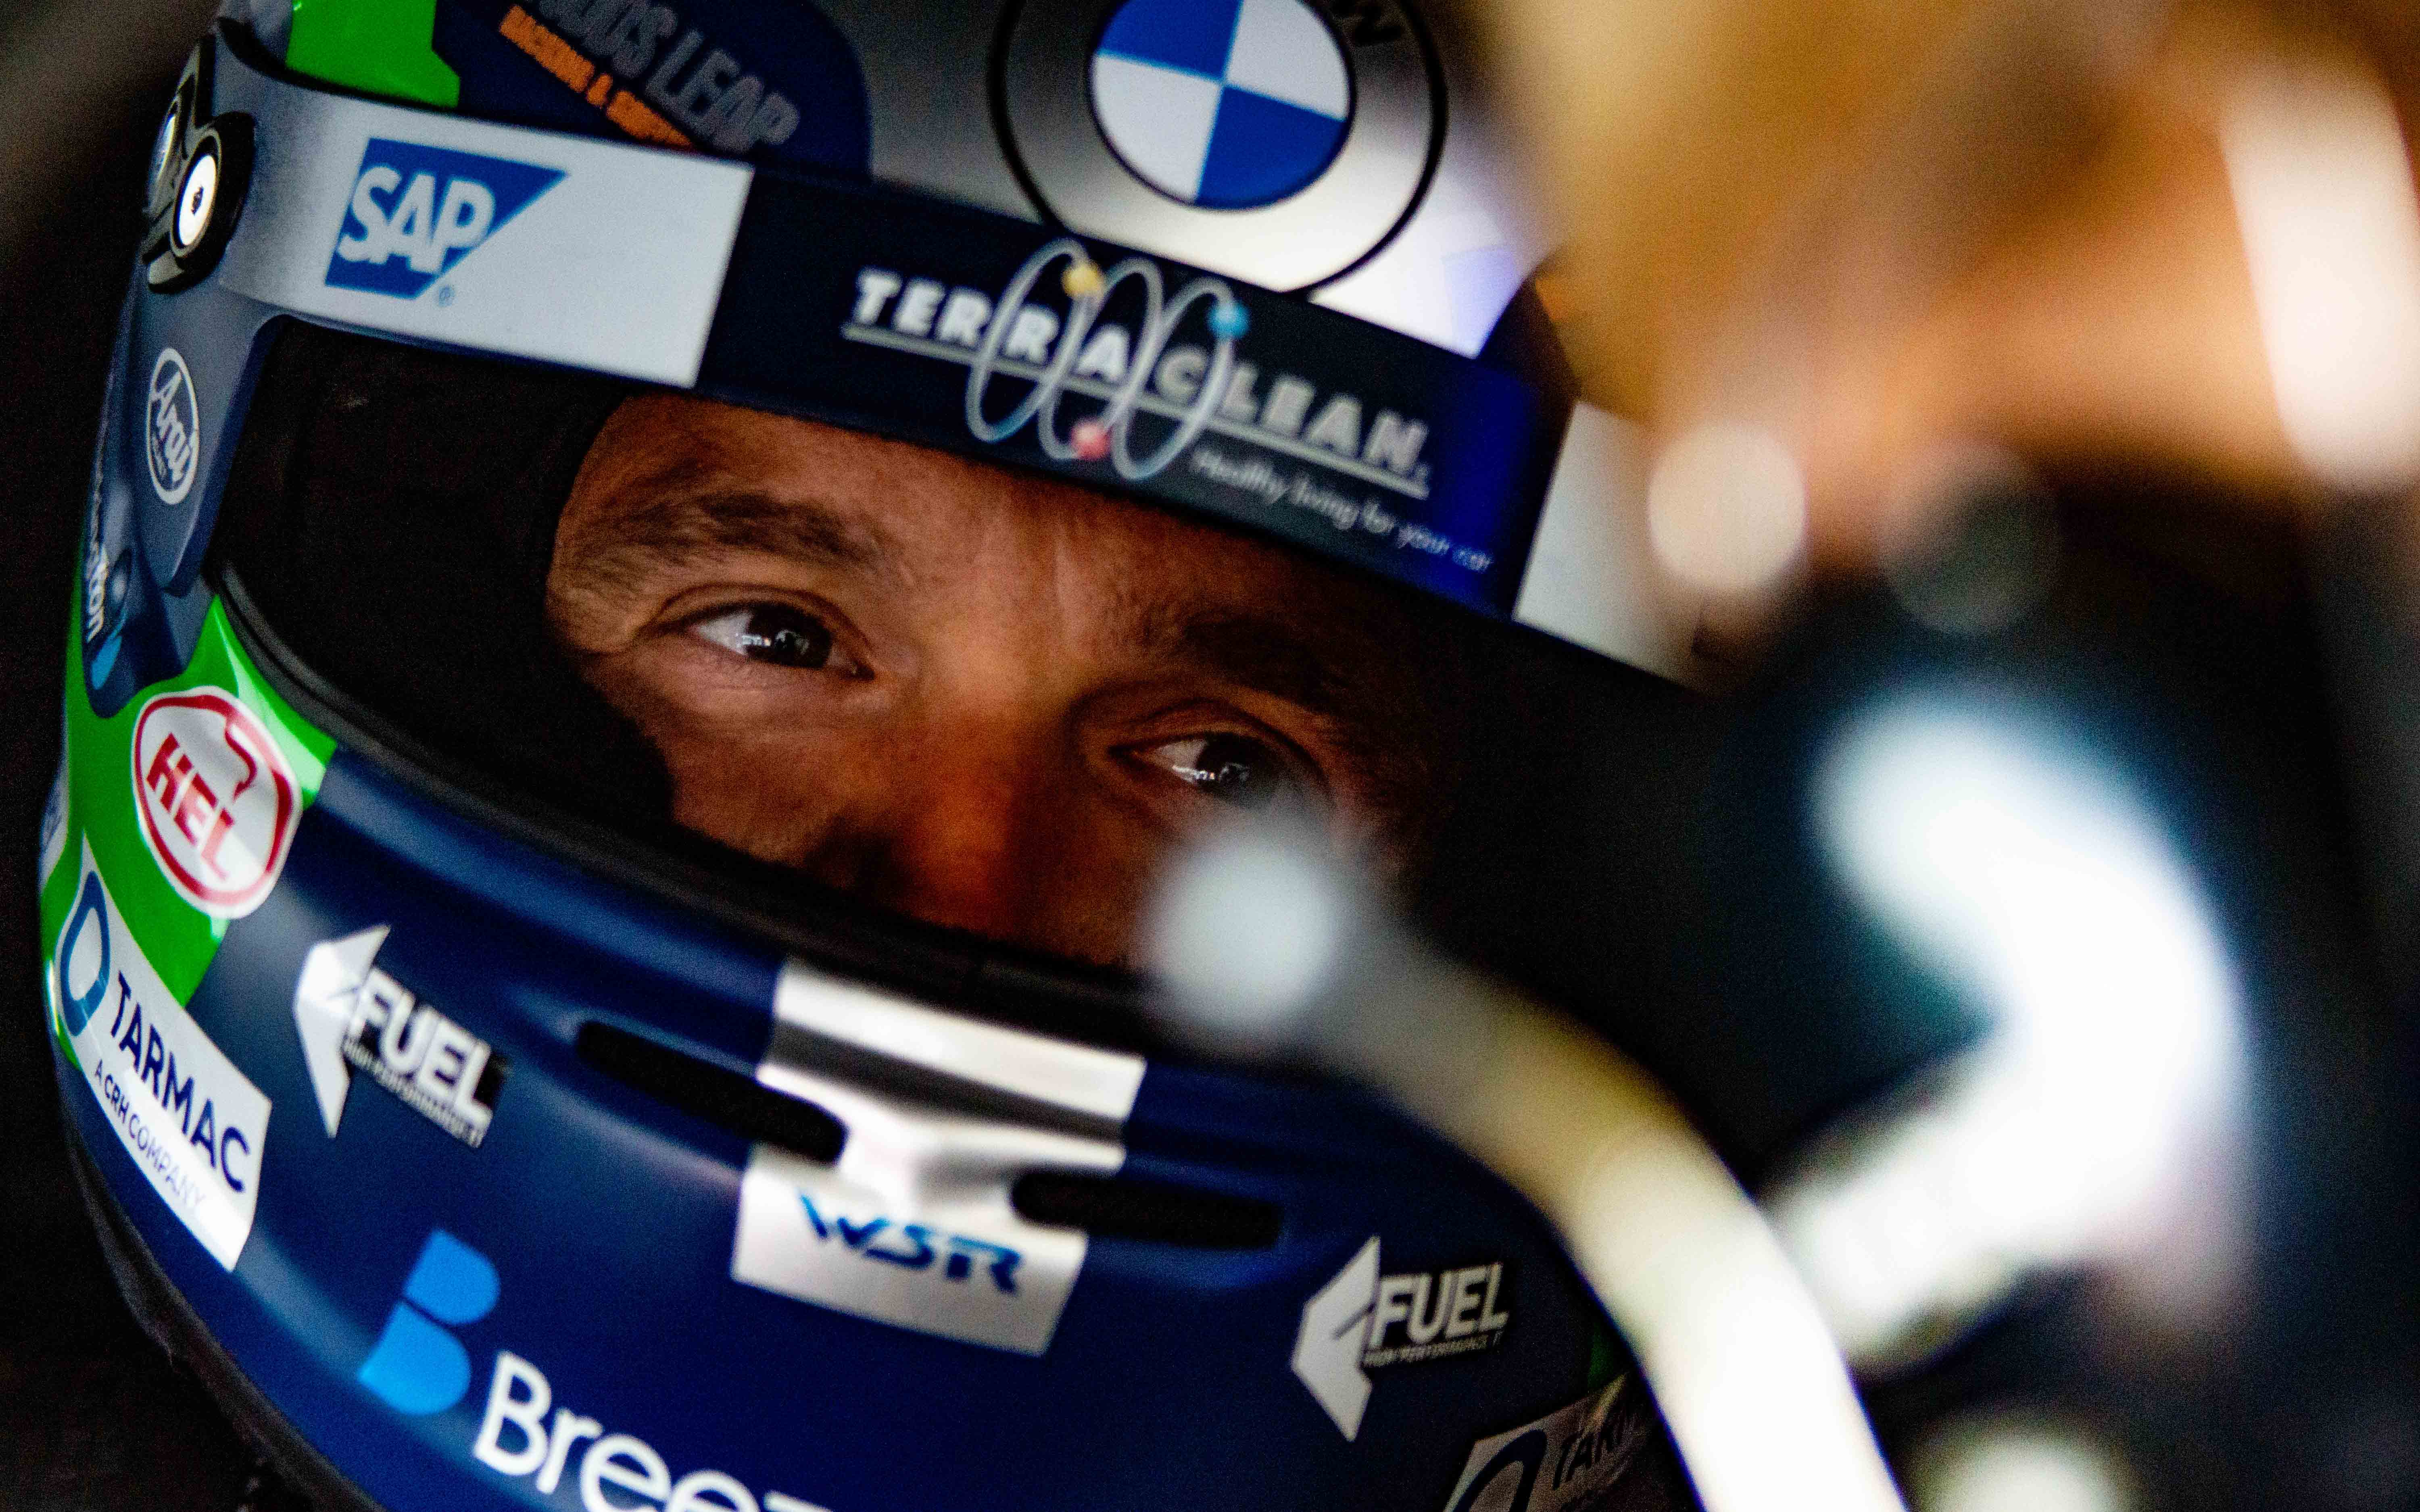 POINTS BUT NO PRIZES ON TOUGH WEEKEND FOR TURKINGTON